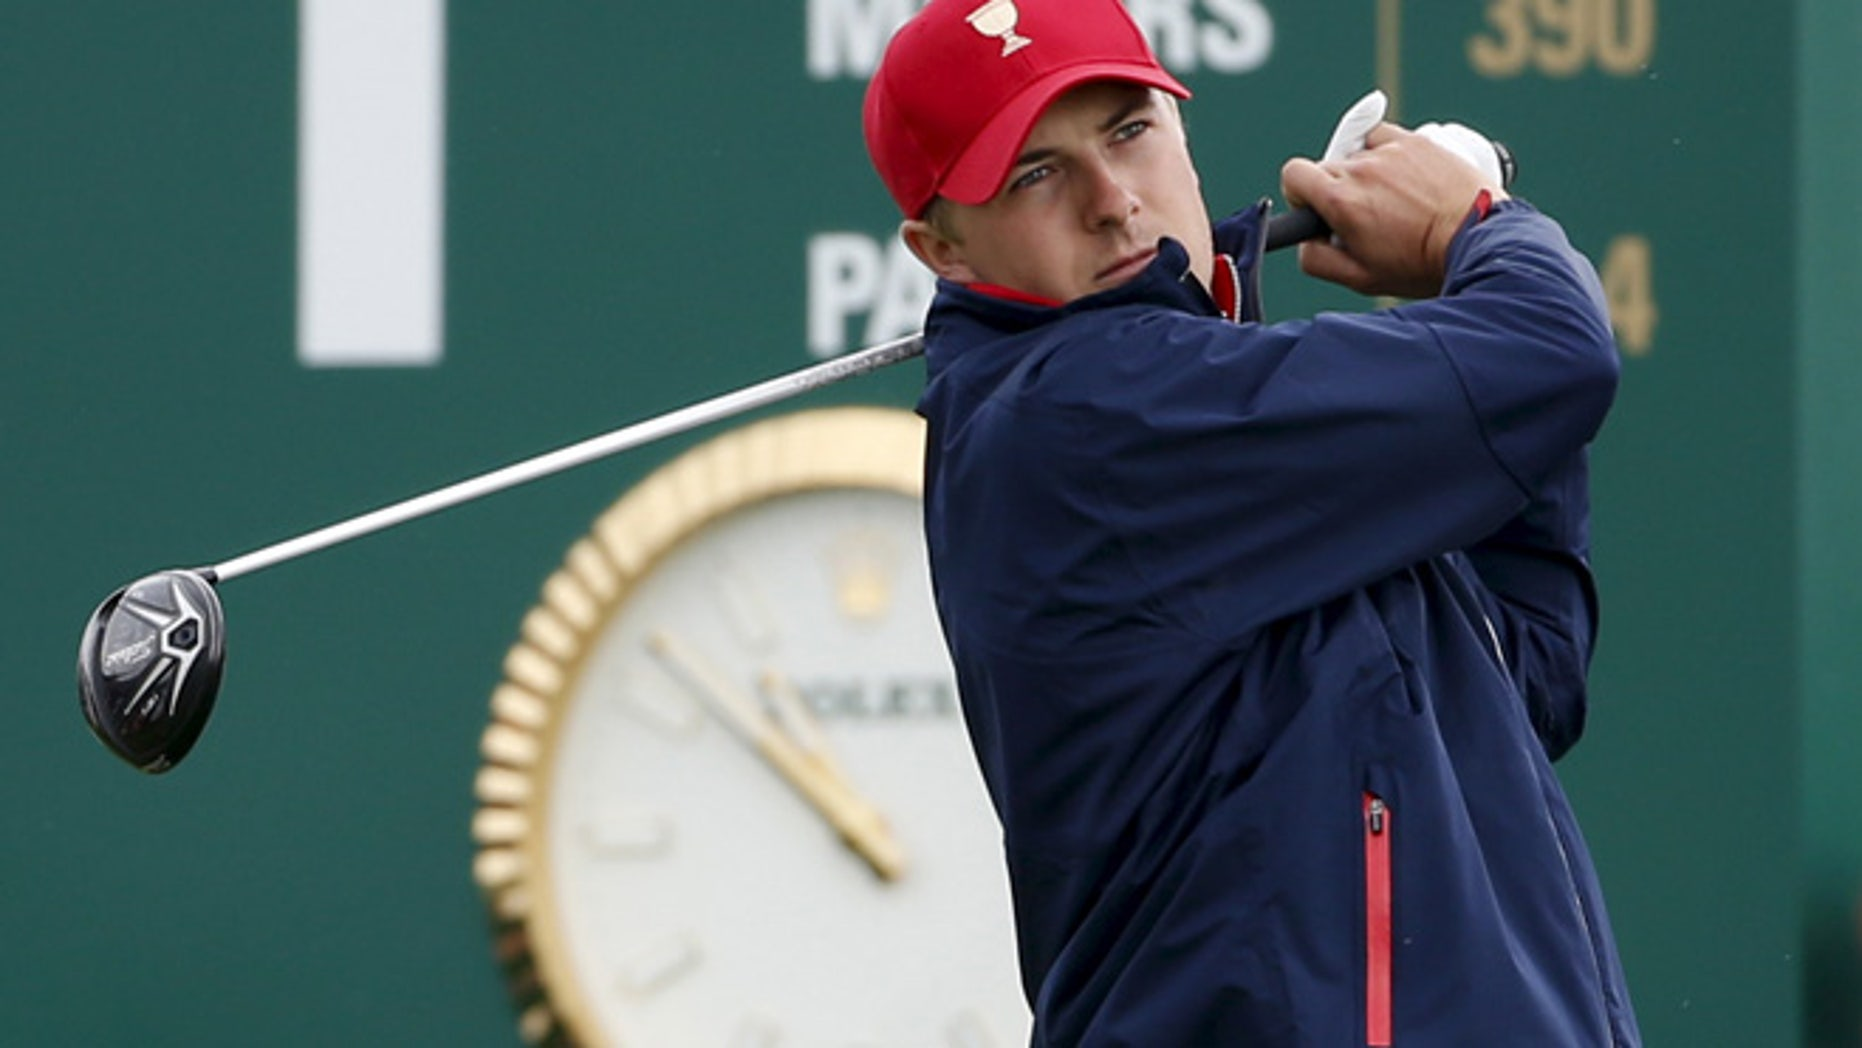 Oct. 11, 2015: U.S. team member Jordan Spieth tees off on the first hole during their singles matches of the 2015 Presidents Cup golf tournament.